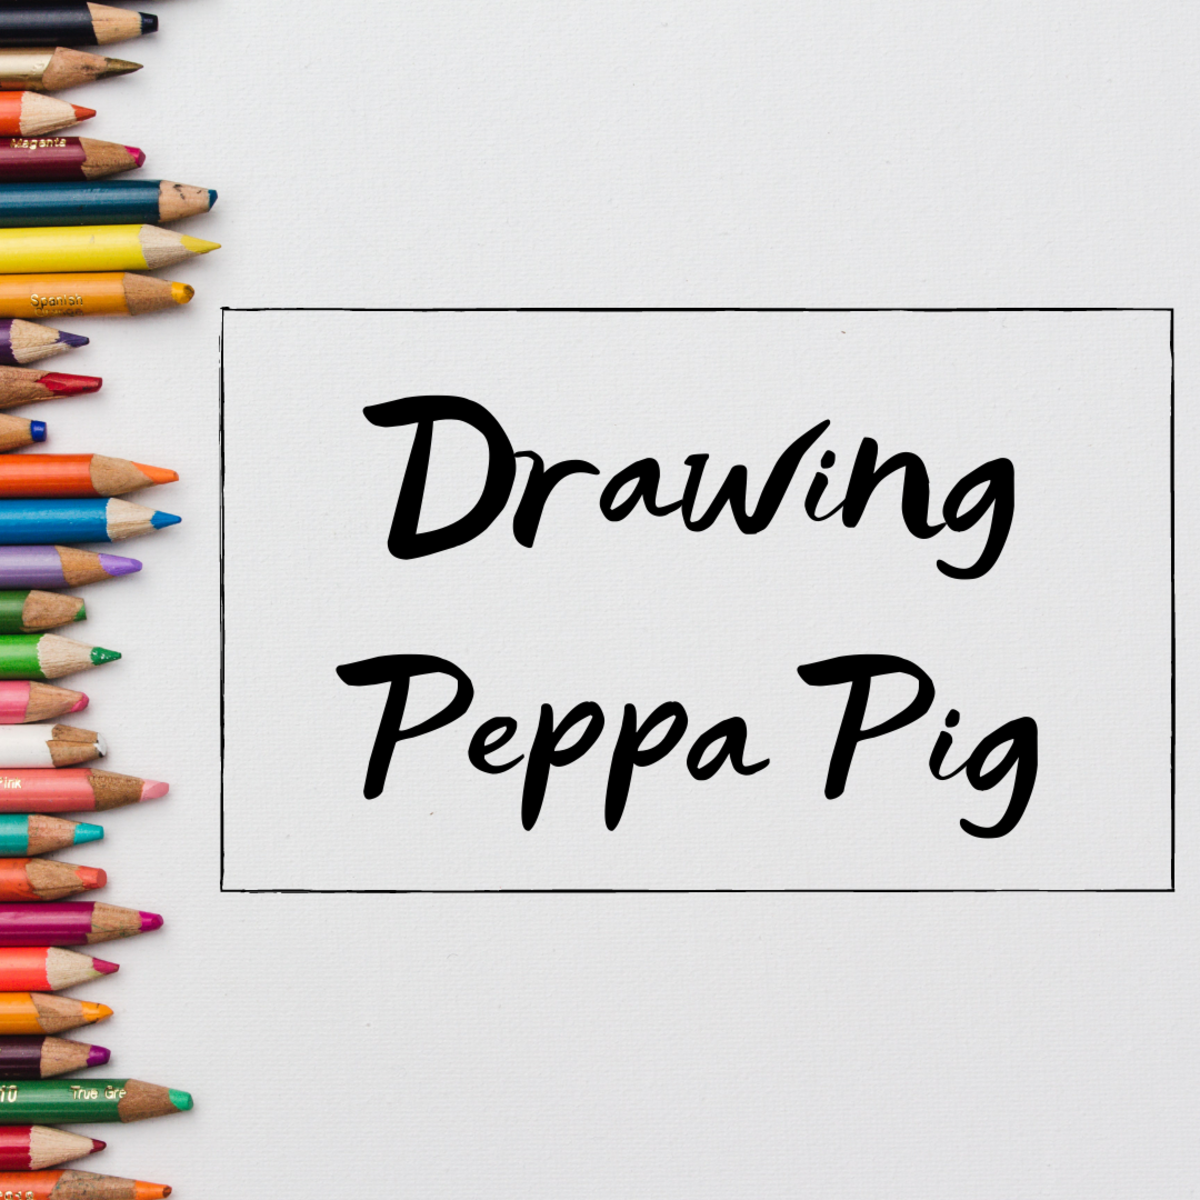 Learn how to draw Peppa Pig with this easy-to-follow, step-by-step guide!